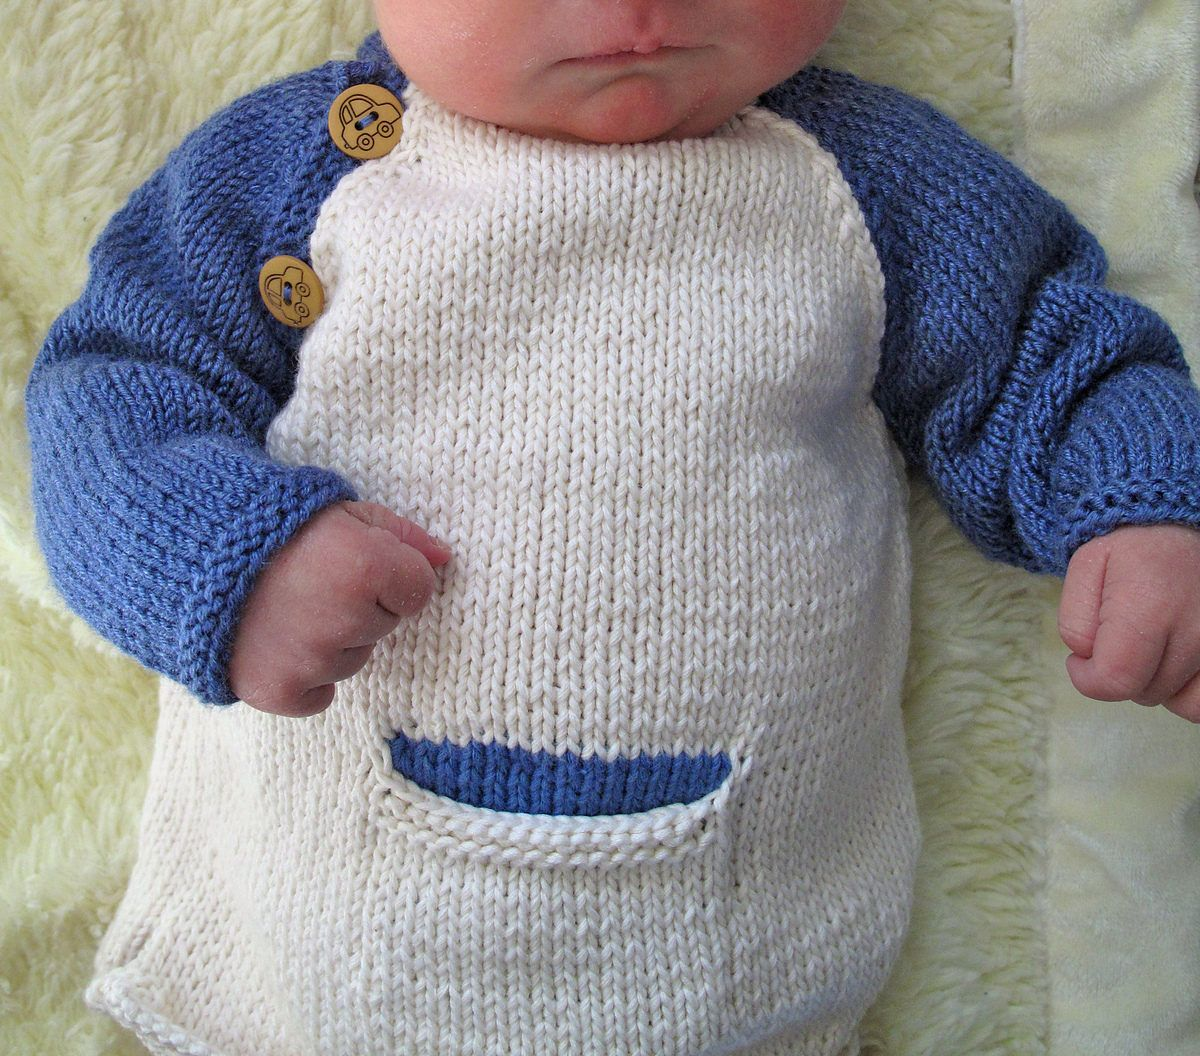 d2c90fe431d4 Free Knitting Pattern for Baby Baseball Tee With Mittens - This two ...